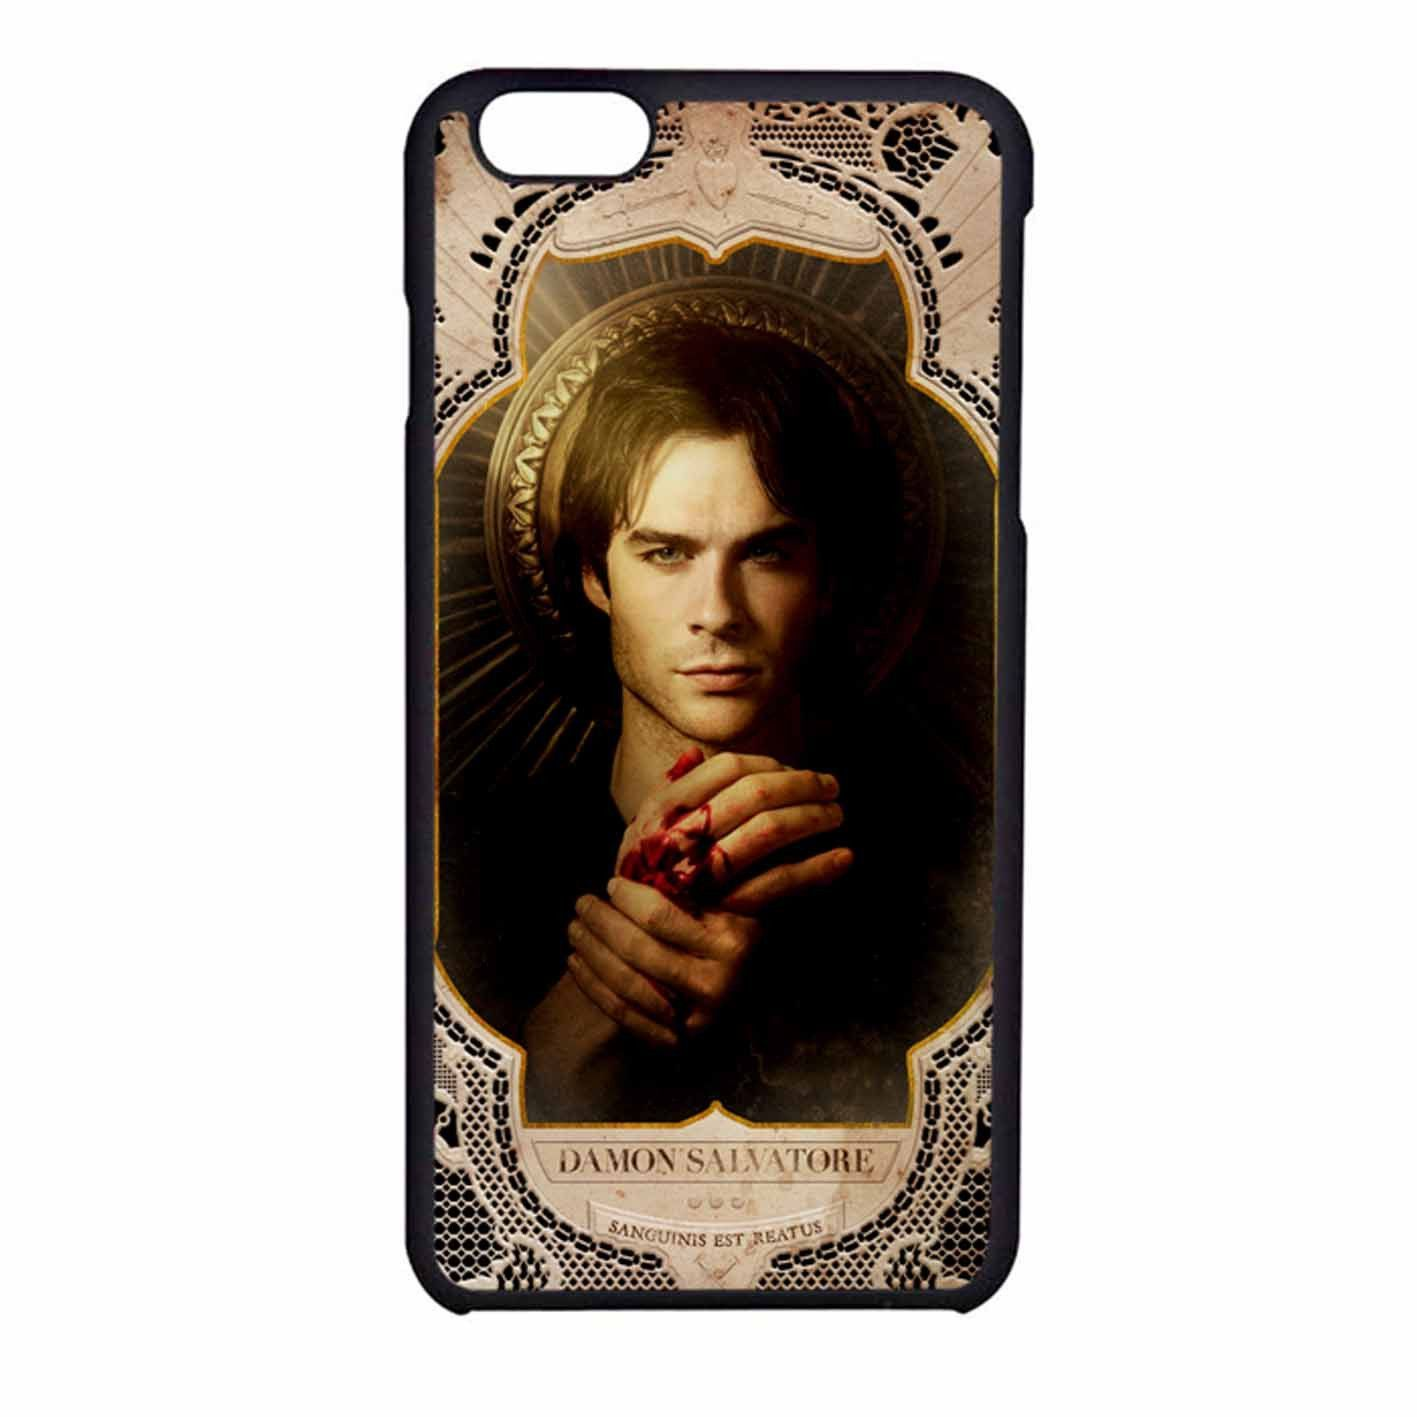 damon salvatore phone case iphone 6